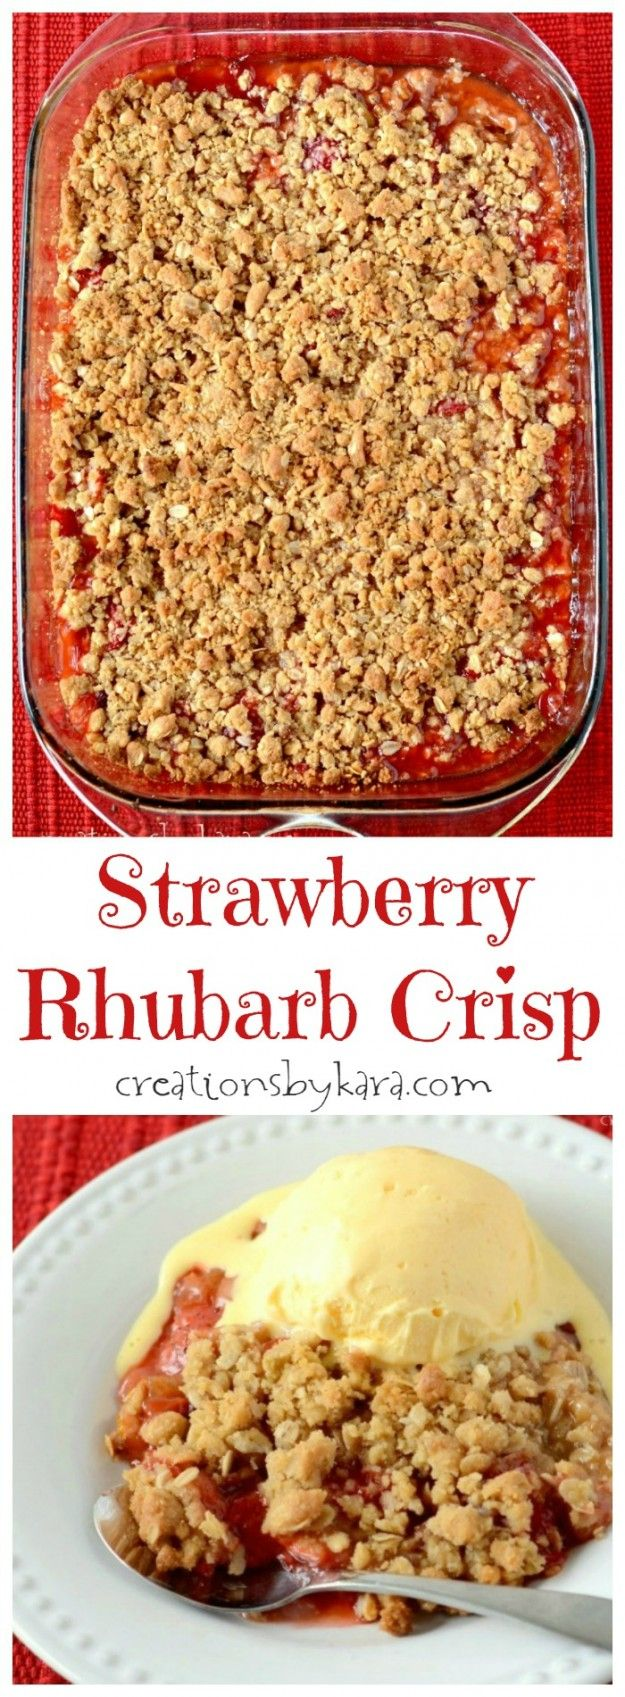 This Strawberry Rhubarb Crisp recipe is a great way to use up that rhubarb from your garden!